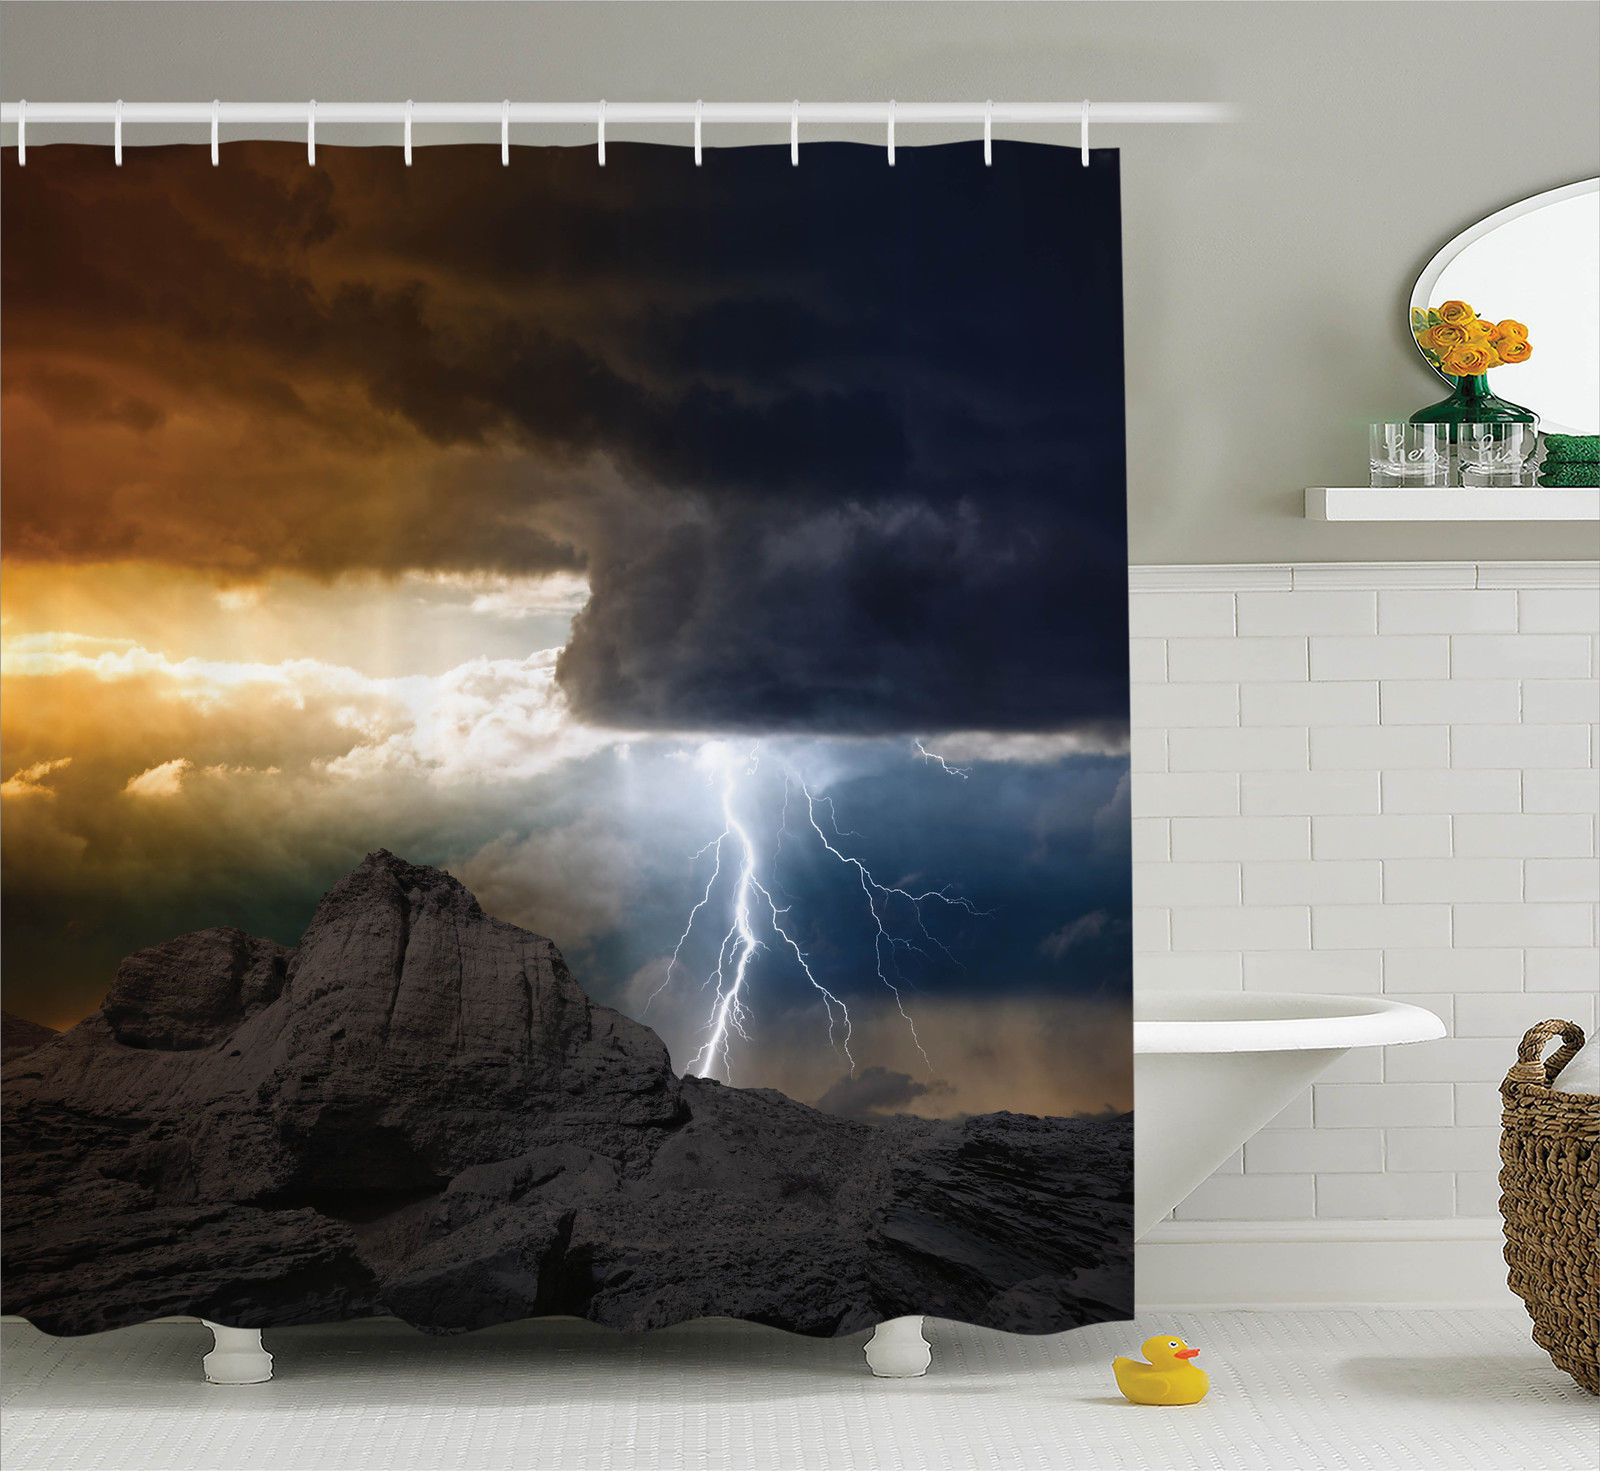 Lake House Decor Bright Lightning Rays From Dark Clouds Hitting Down To The Mountain Storm Theme, Bathroom Accessories, 69W X 84L Inches... by Kozmos